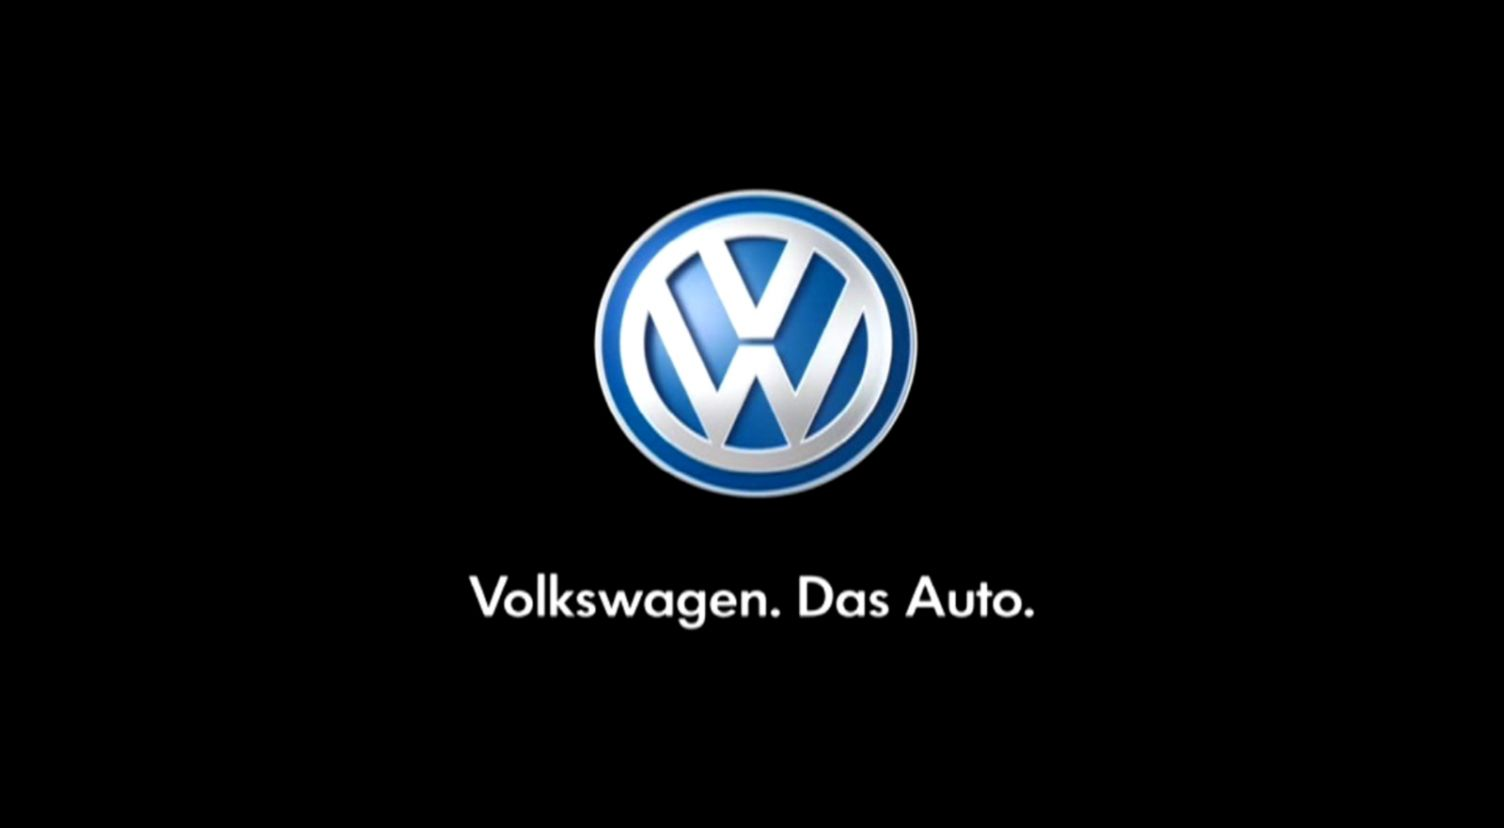 Volkswagen Logo Wallpapers Wallpaper Cave